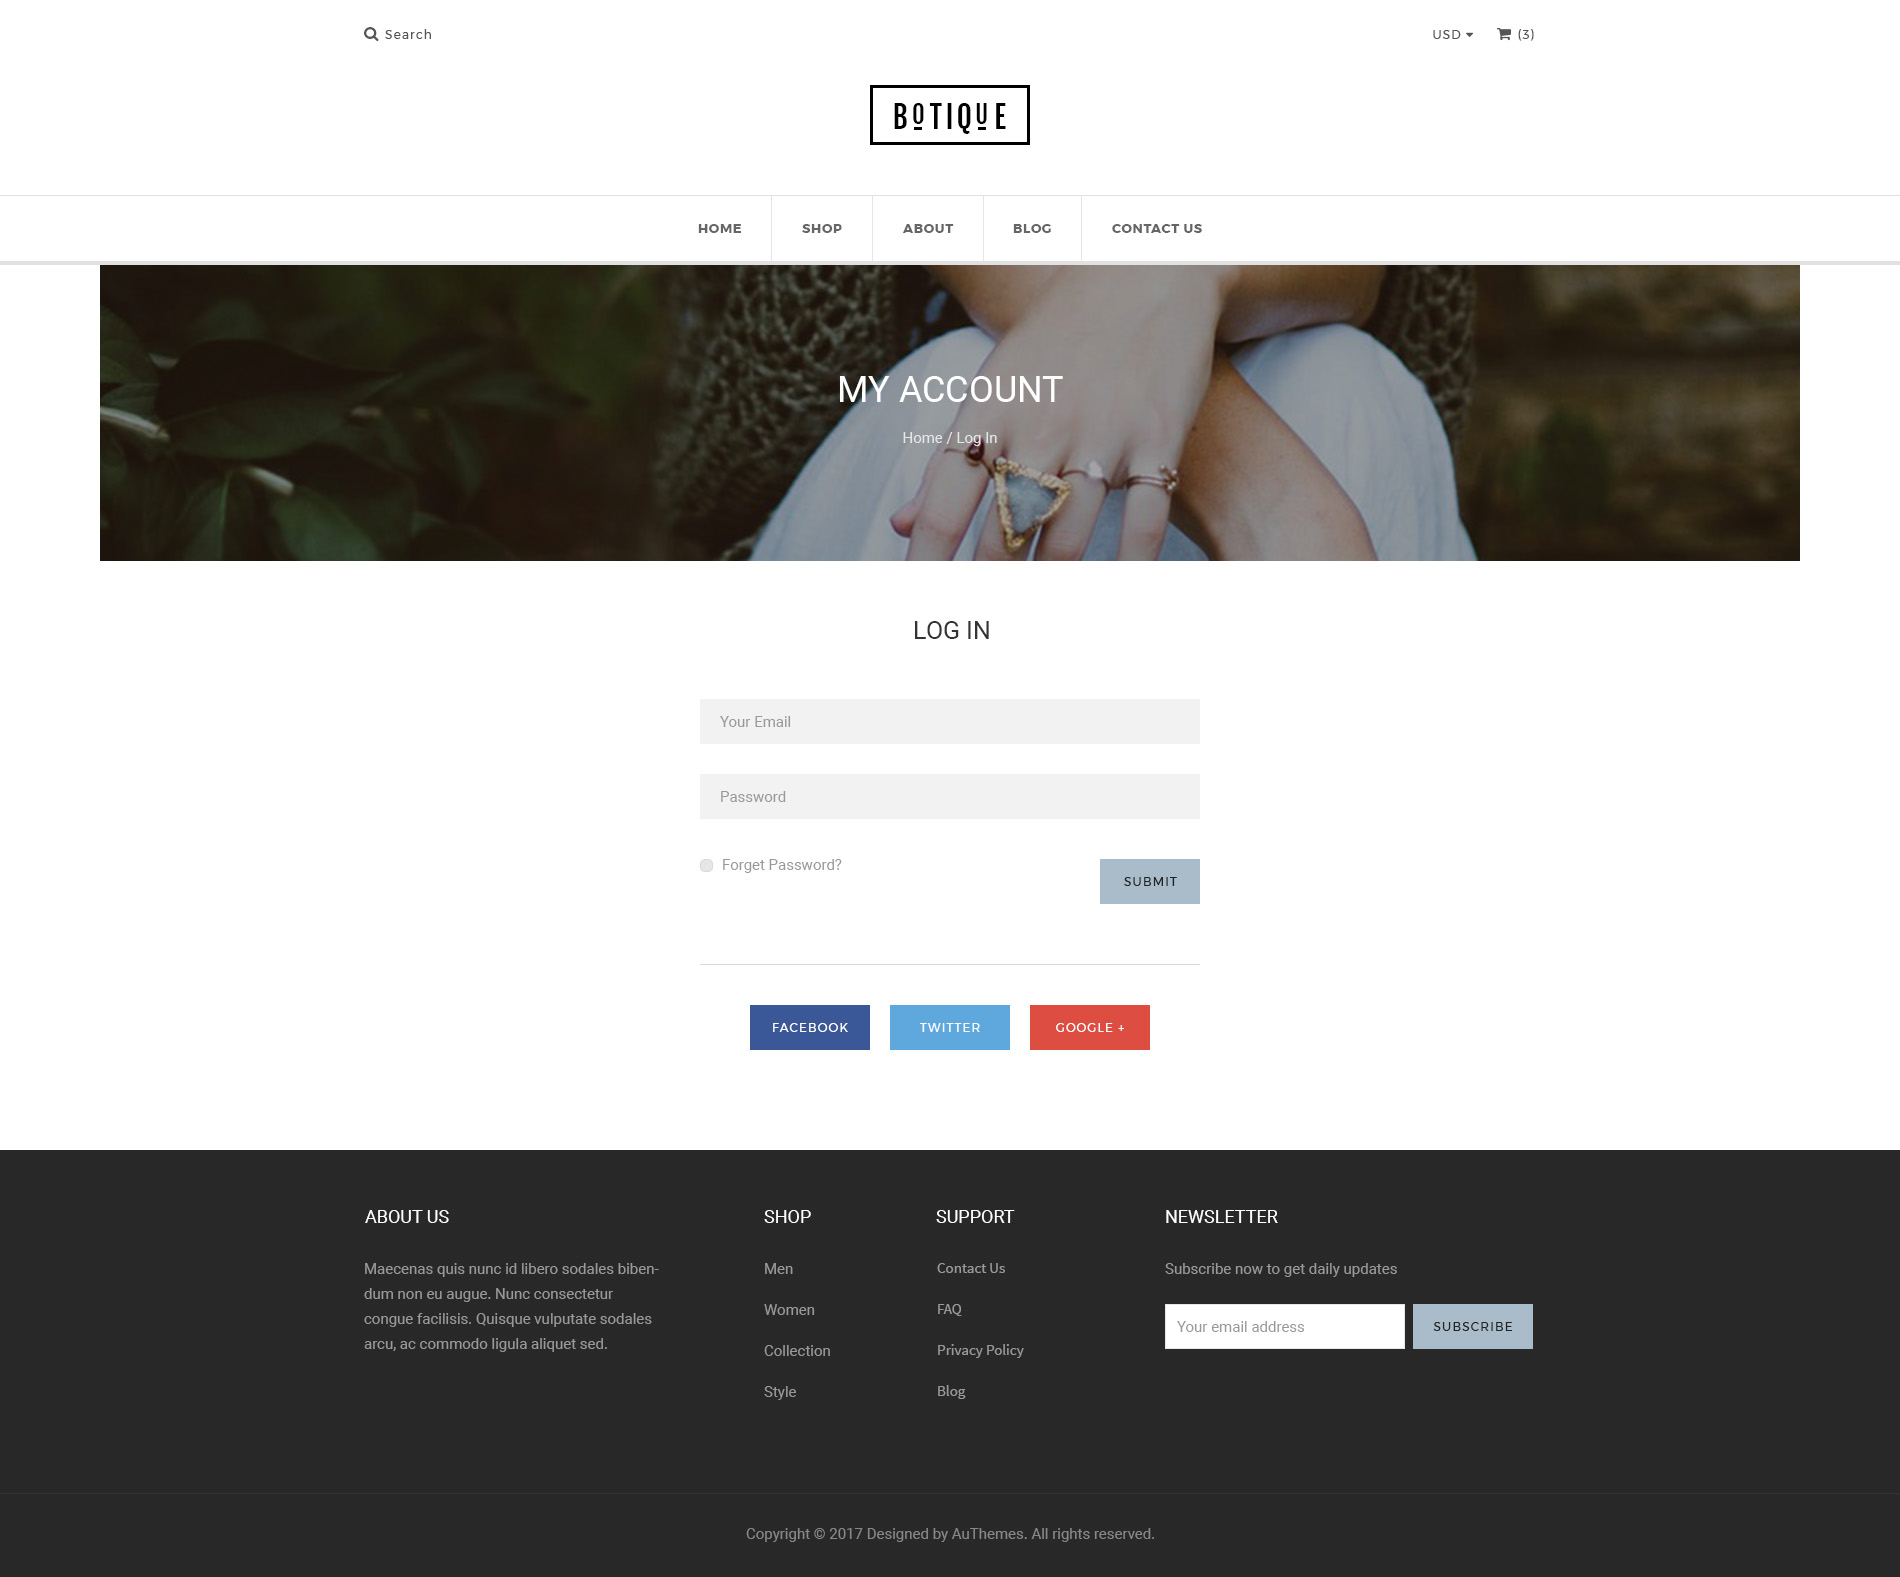 Botique Responsive Multi Purpose Ecommerce Psd Template By Authemes